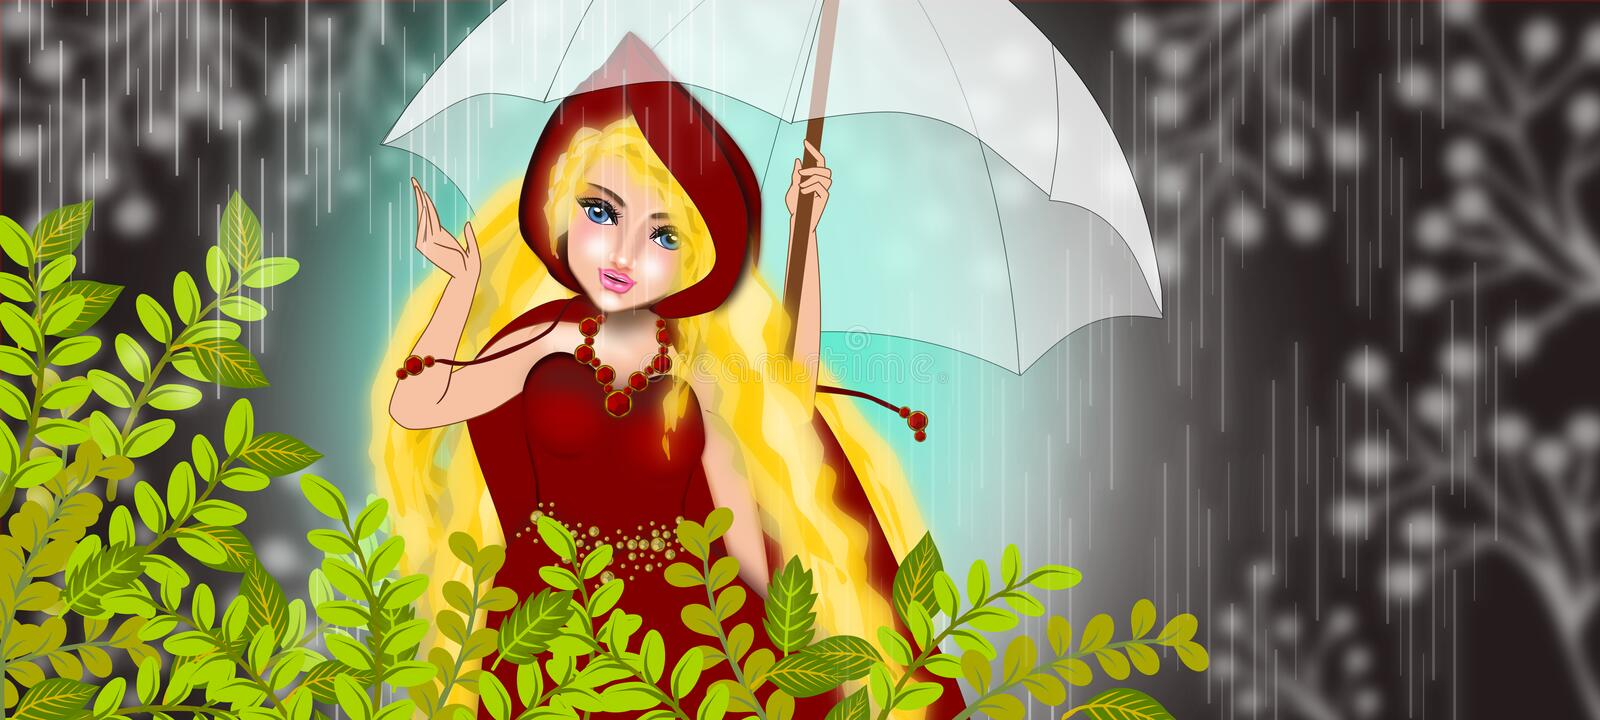 Red riding hood under the pouring rain. Beautiful red riding hood standing under the rain illustrations